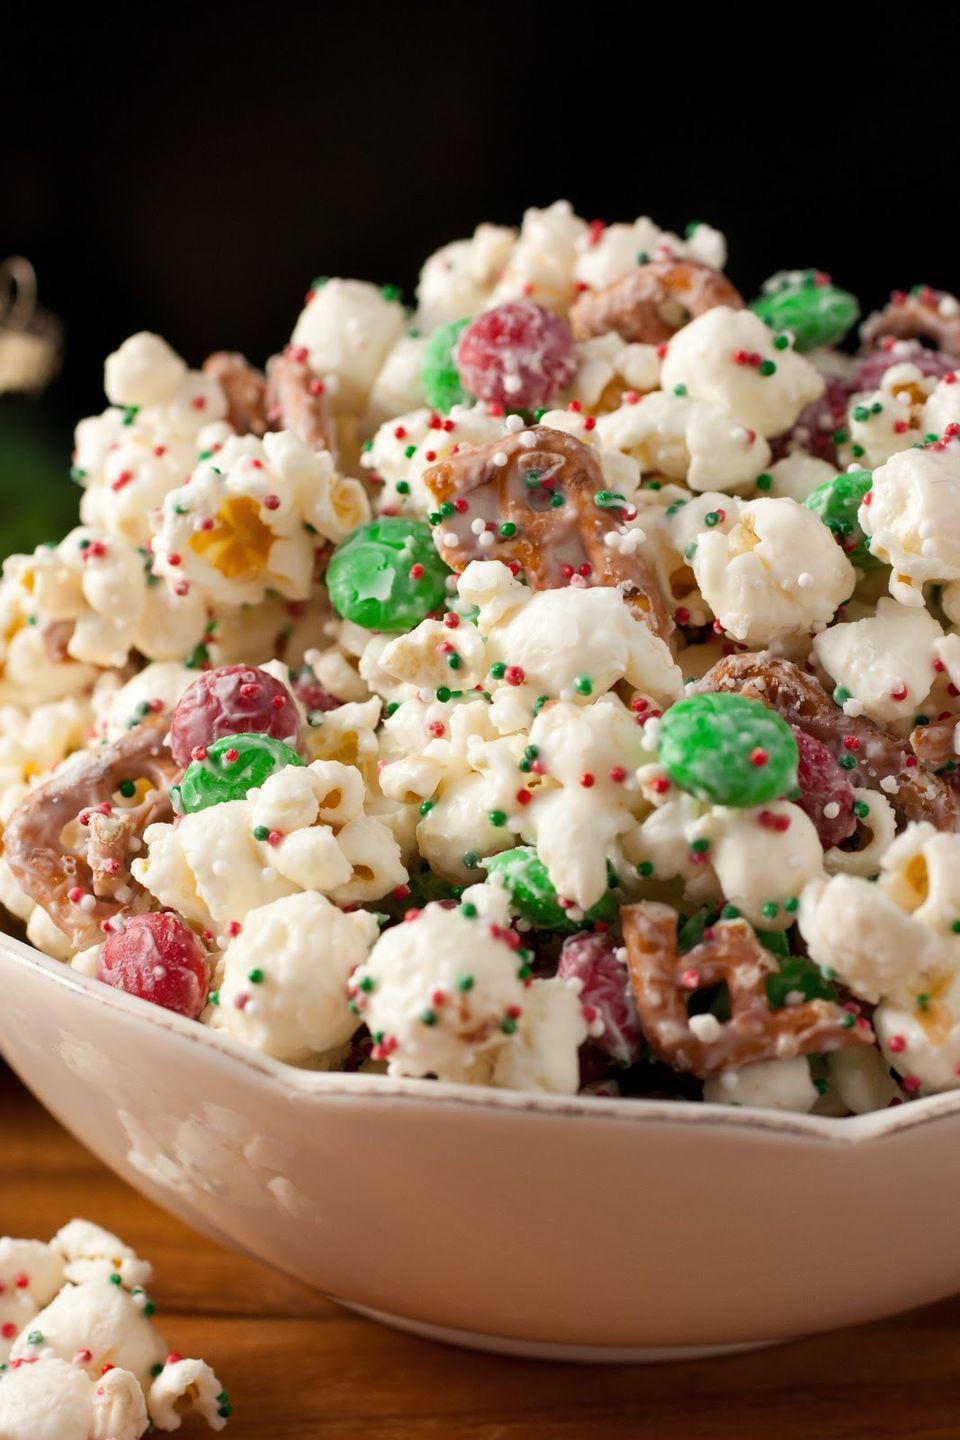 """<p>Add vanilla candy melts, pretzel pieces, and festively colored M&M's and sprinkles to a bag of popcorn to create this cheery snack. </p><p><strong>Get the recipe at <a href=""""http://www.cookingclassy.com/2012/12/christmas-crunch-funfetti-popcorn-christmas-style/"""" rel=""""nofollow noopener"""" target=""""_blank"""" data-ylk=""""slk:Cooking Classy"""" class=""""link rapid-noclick-resp"""">Cooking Classy</a>.</strong></p>"""